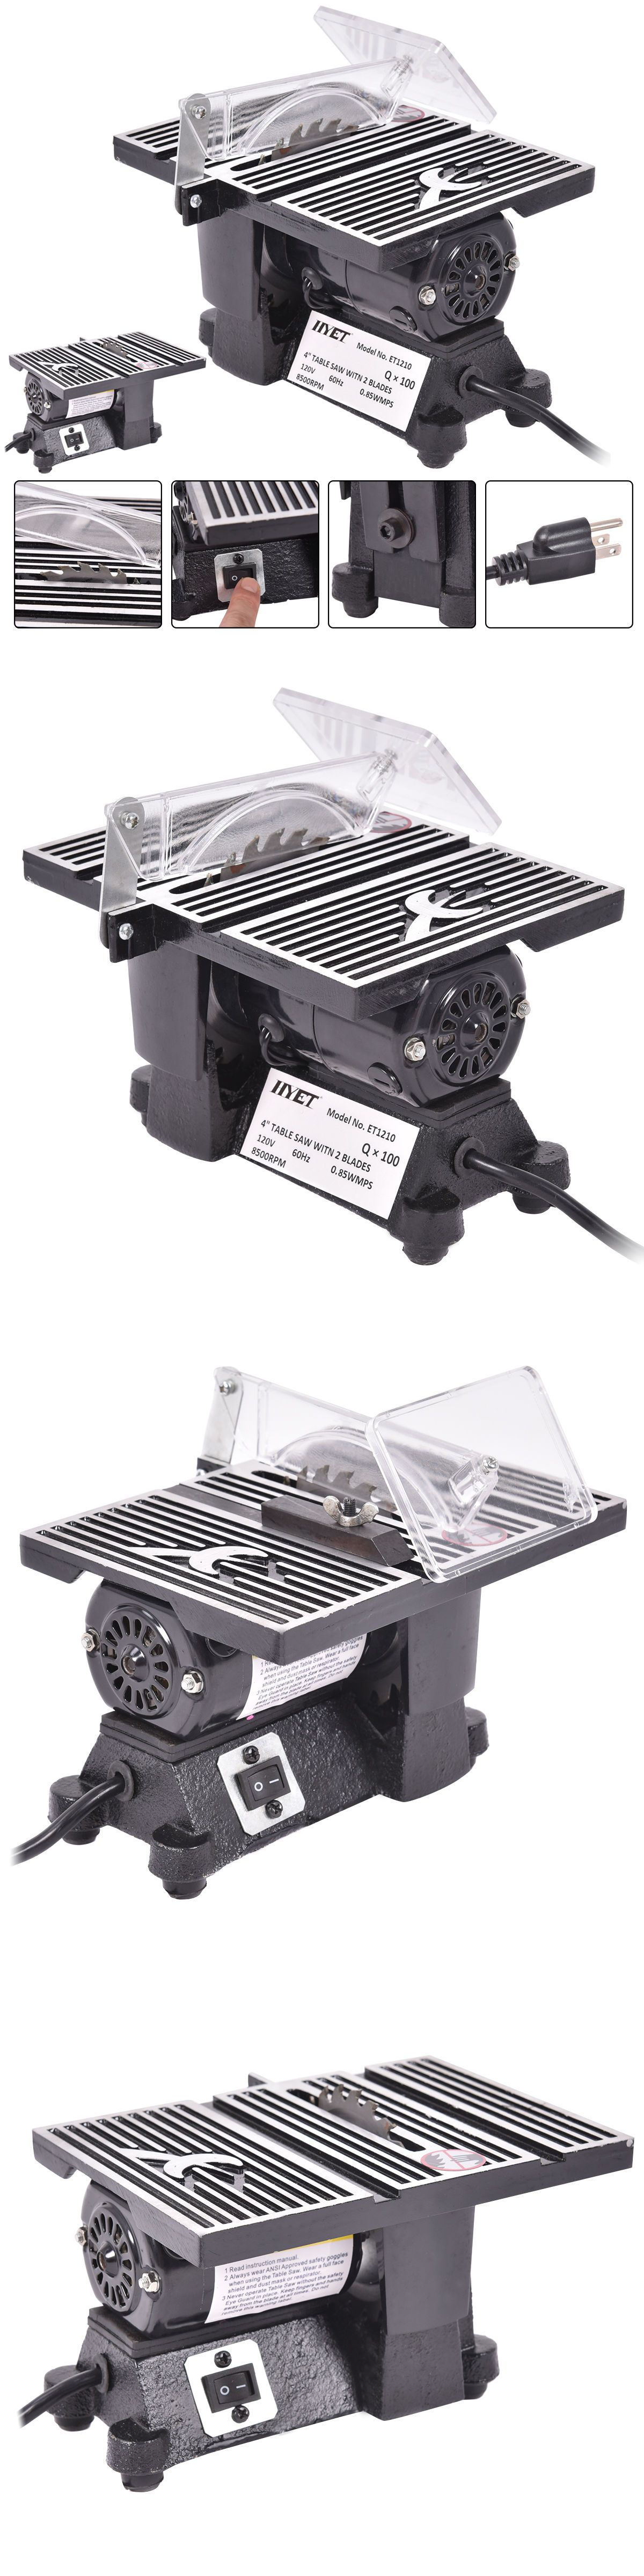 Table Saws 122835 New 4 Mini Electric Table Saw Tablesaw 8500 Rpm